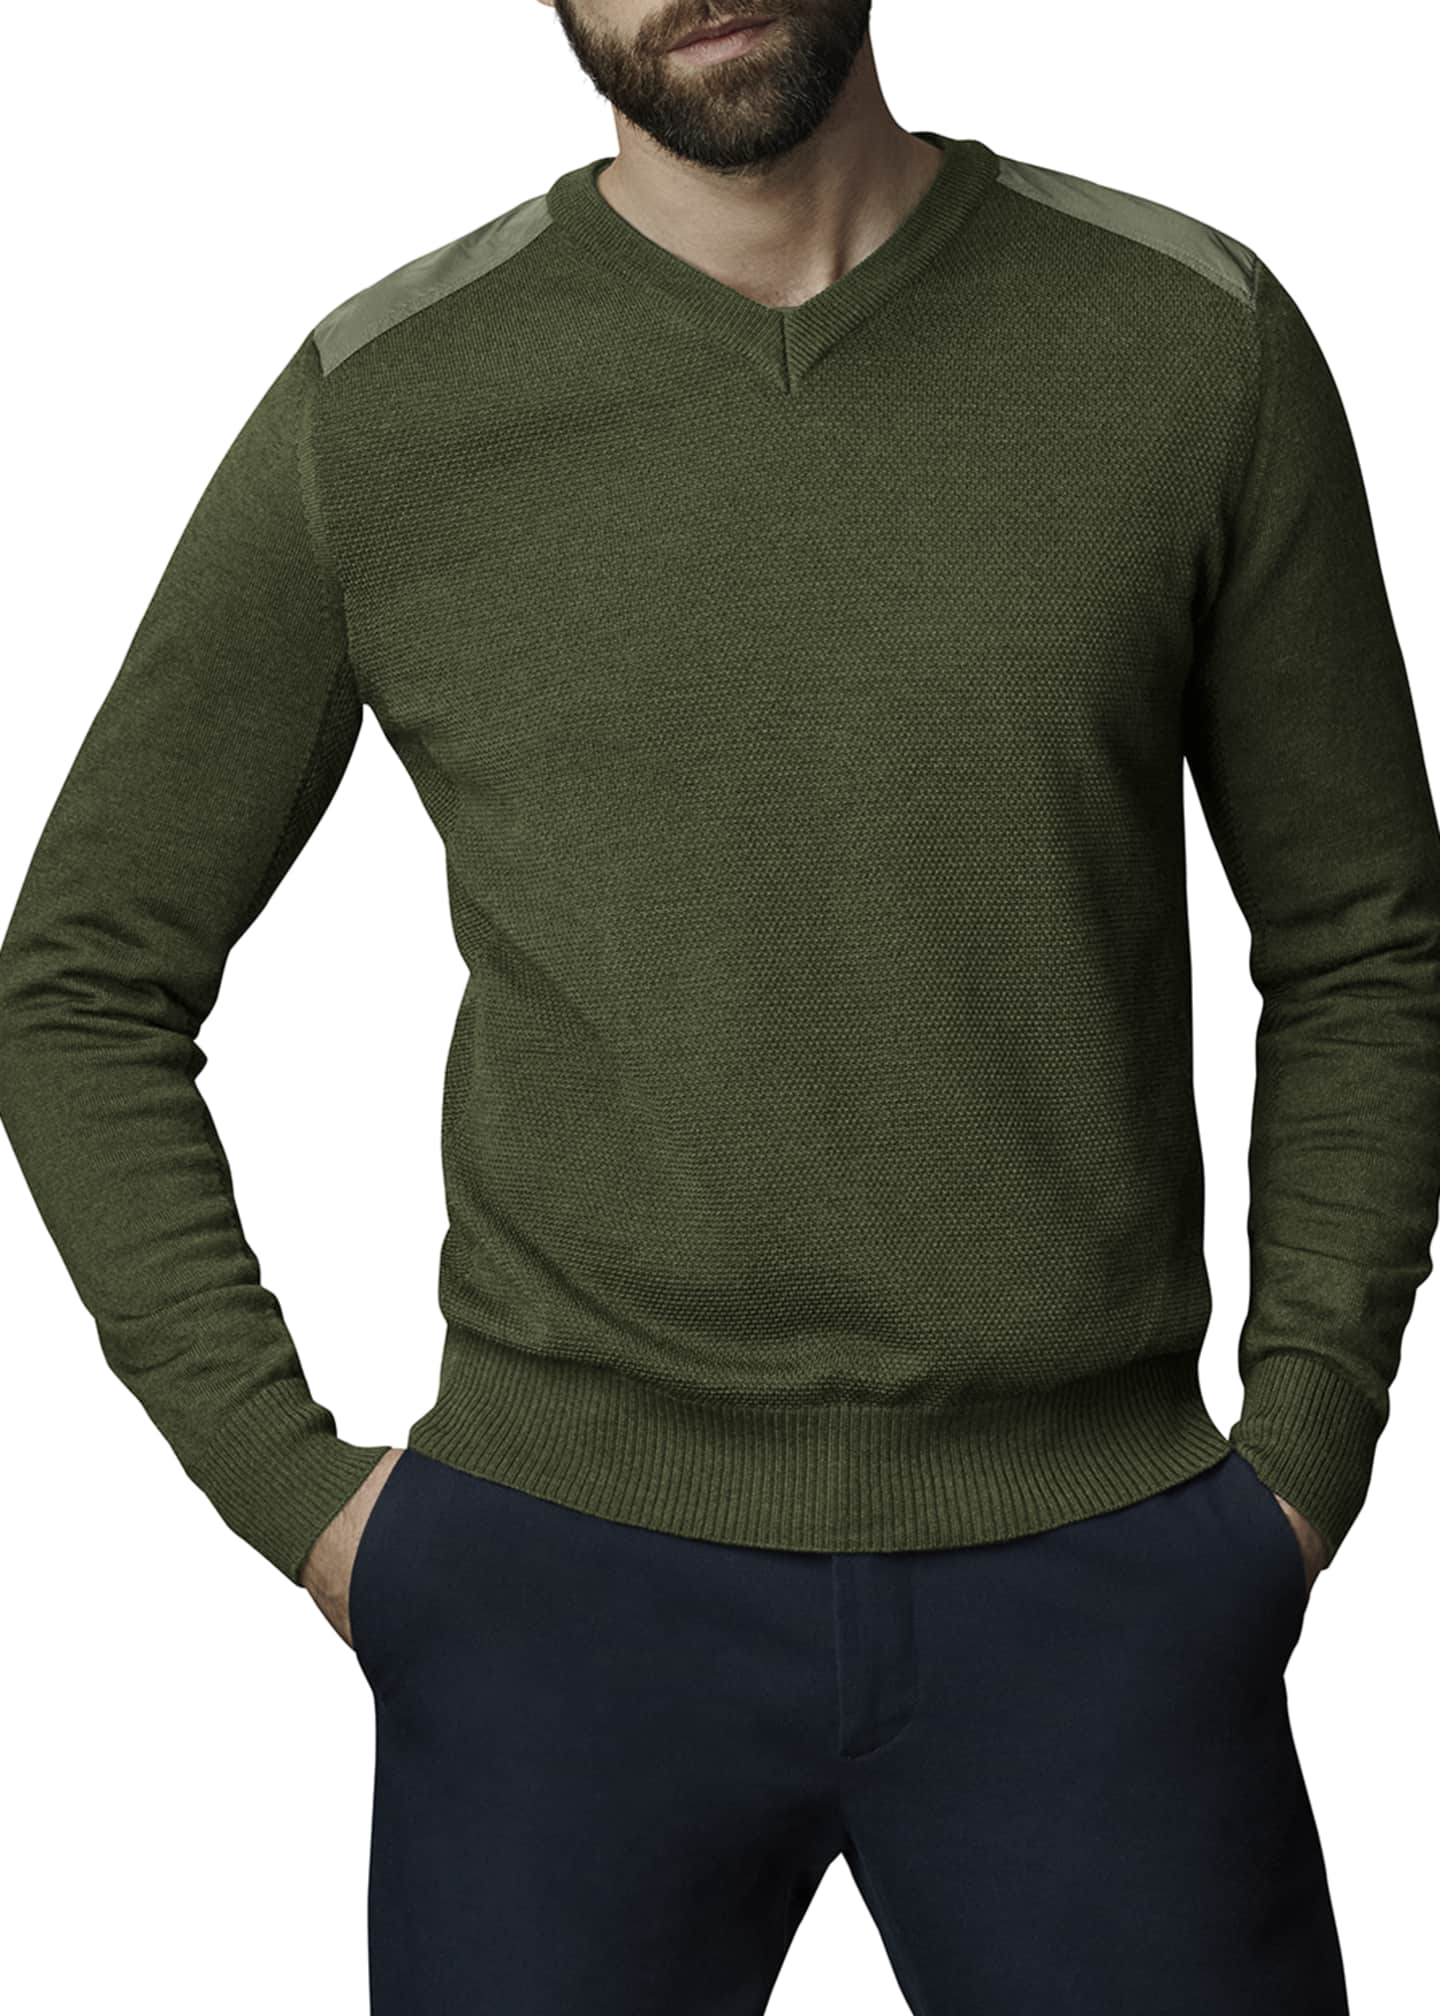 Image 1 of 2: McLeod V-Neck Sweater w/ Nylon Shoulders